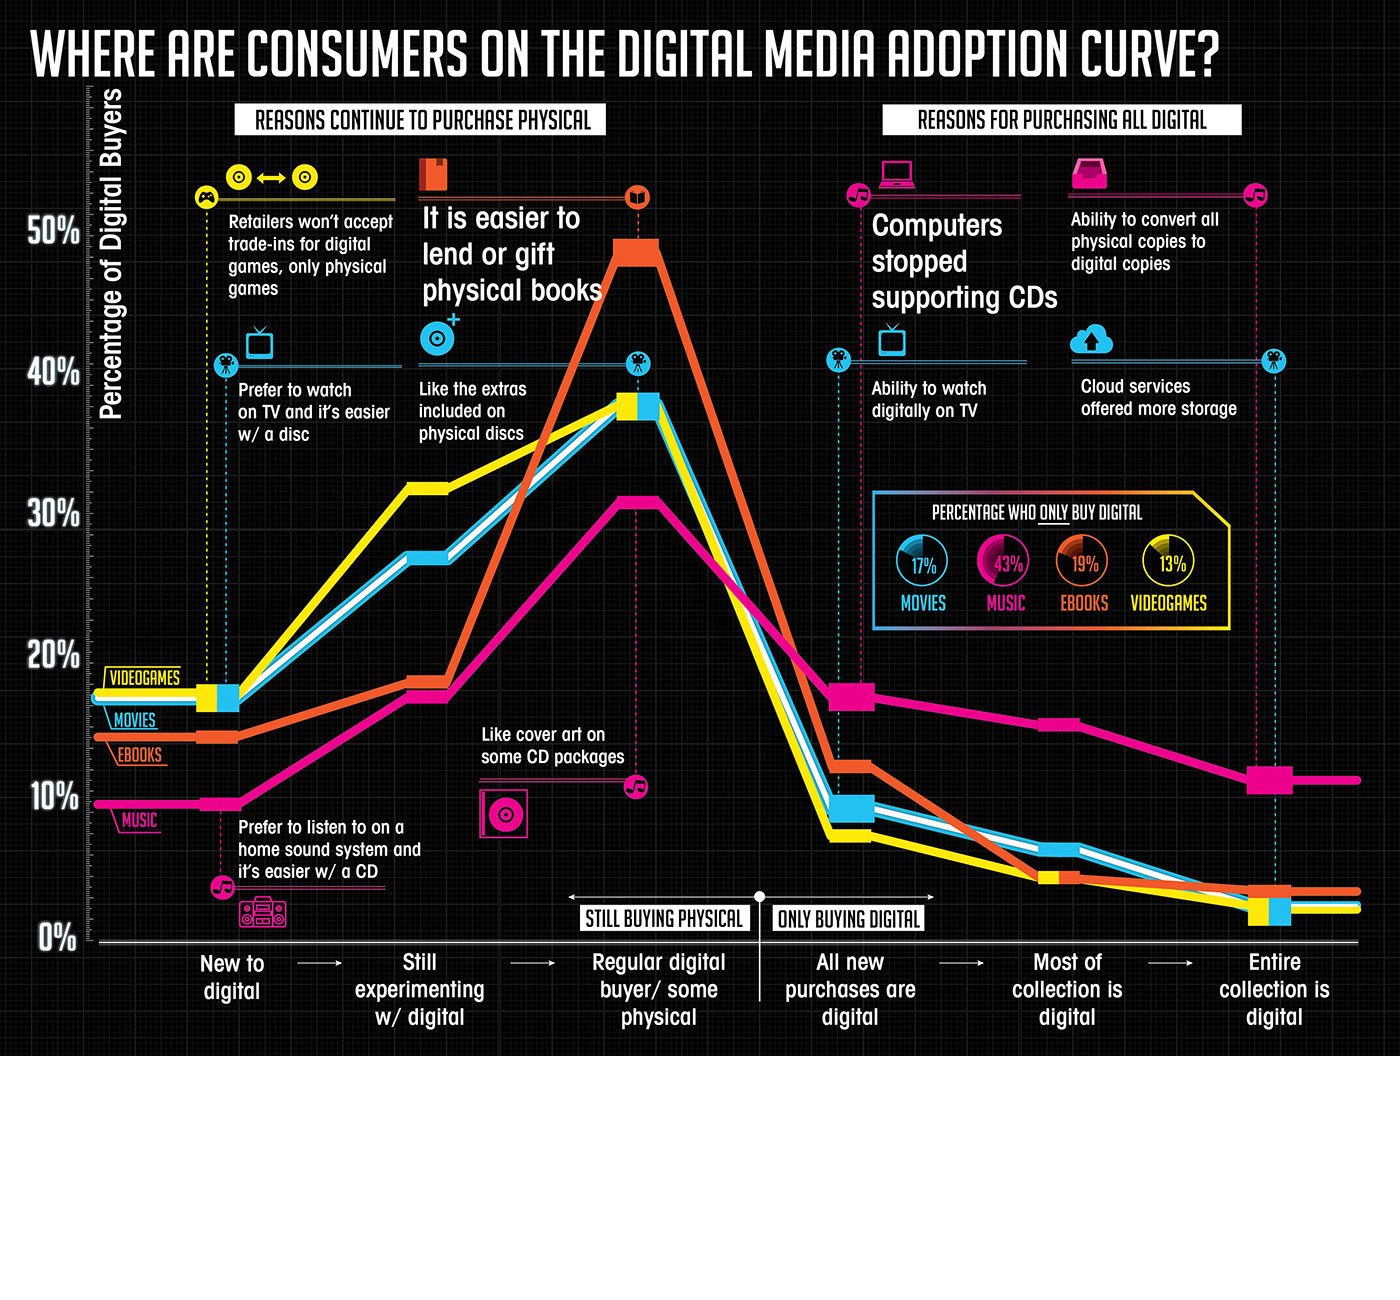 Market Research Infographic - Digital Media Adoption